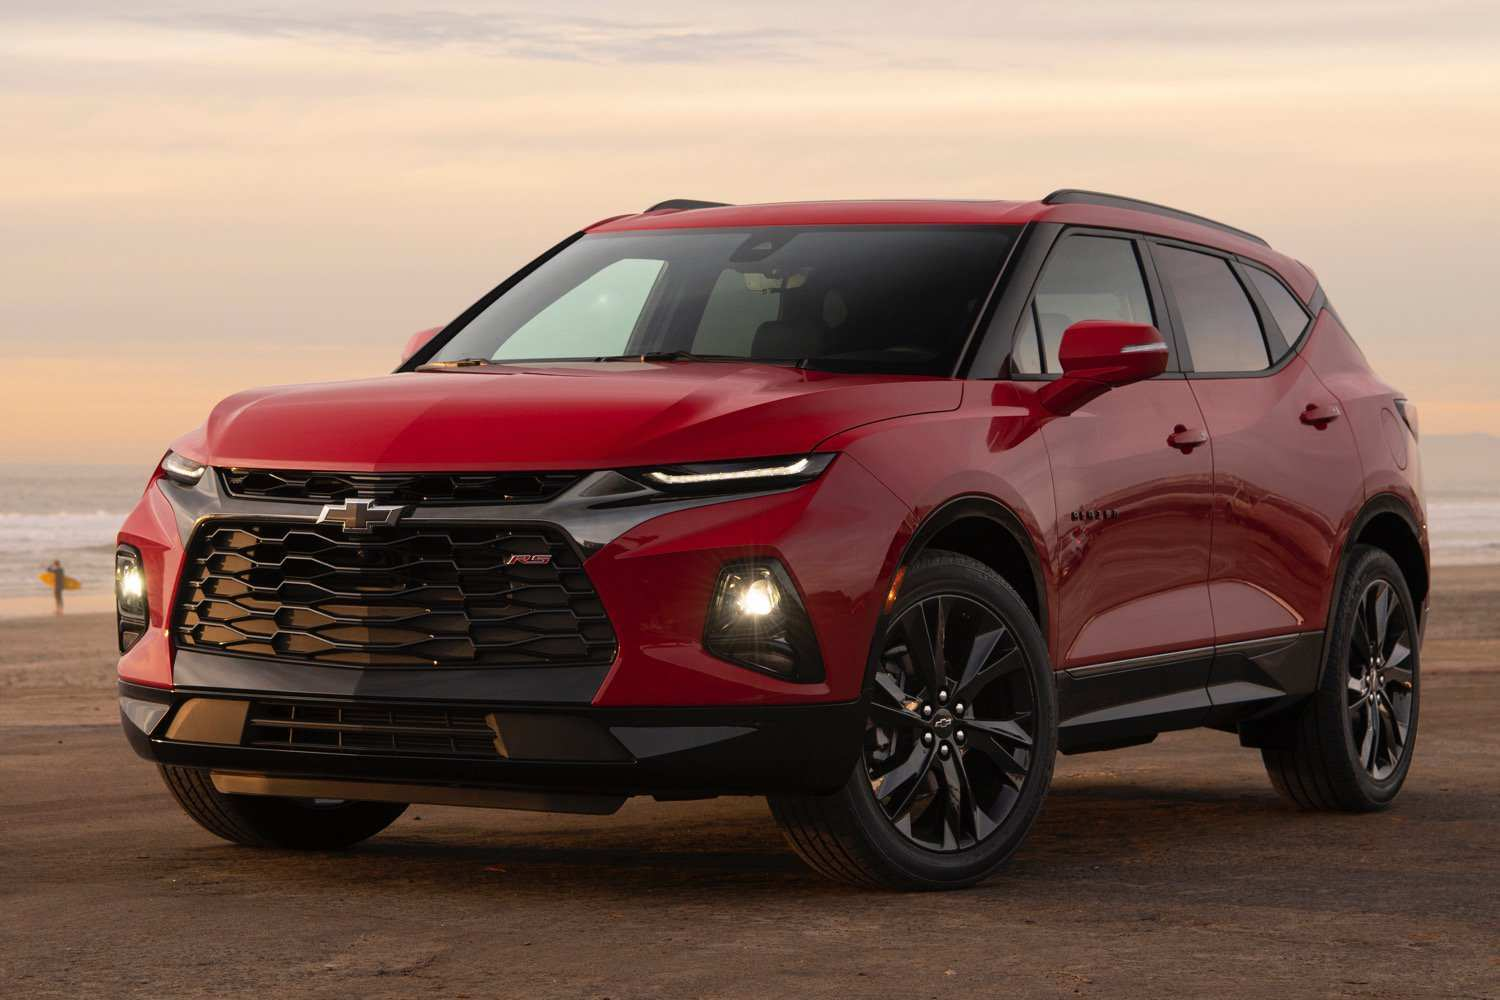 84 The Best 2020 Chevy Trailblazer Review